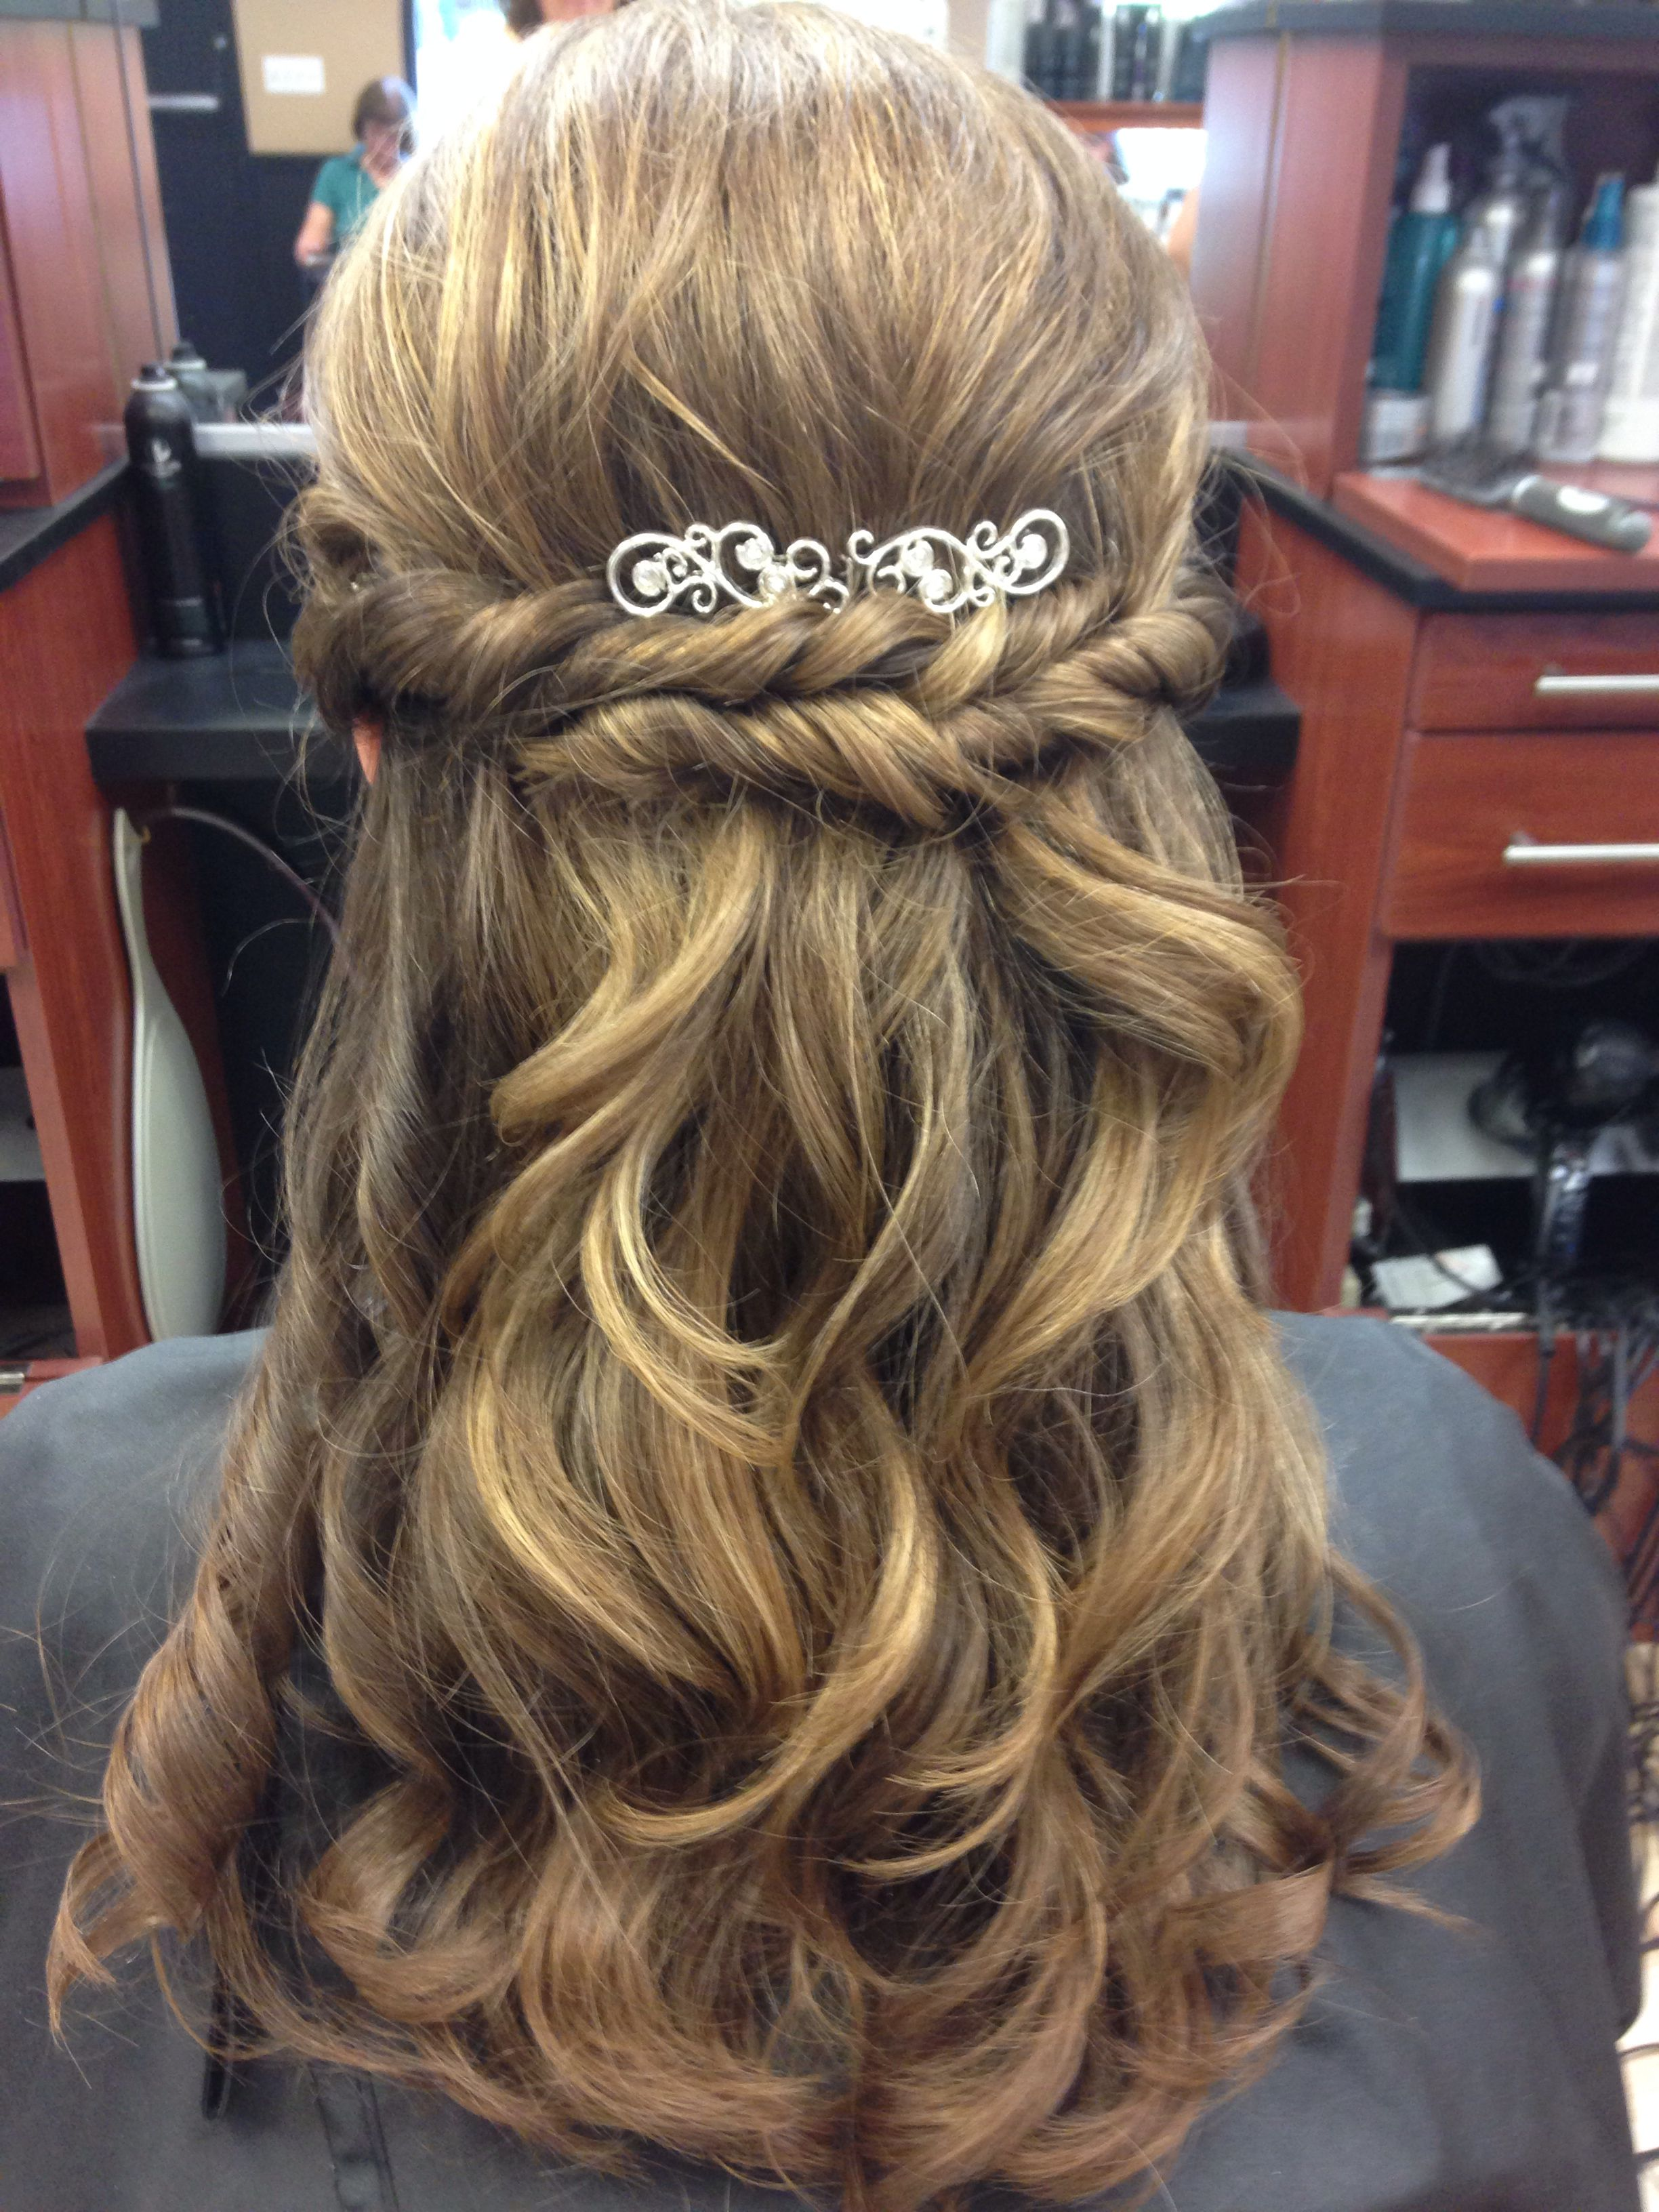 Curled Prom Hairstyle With Twist And Sparkly Barrette Prom Hairstyles For Short Hair Hair Styles Curled Prom Hair